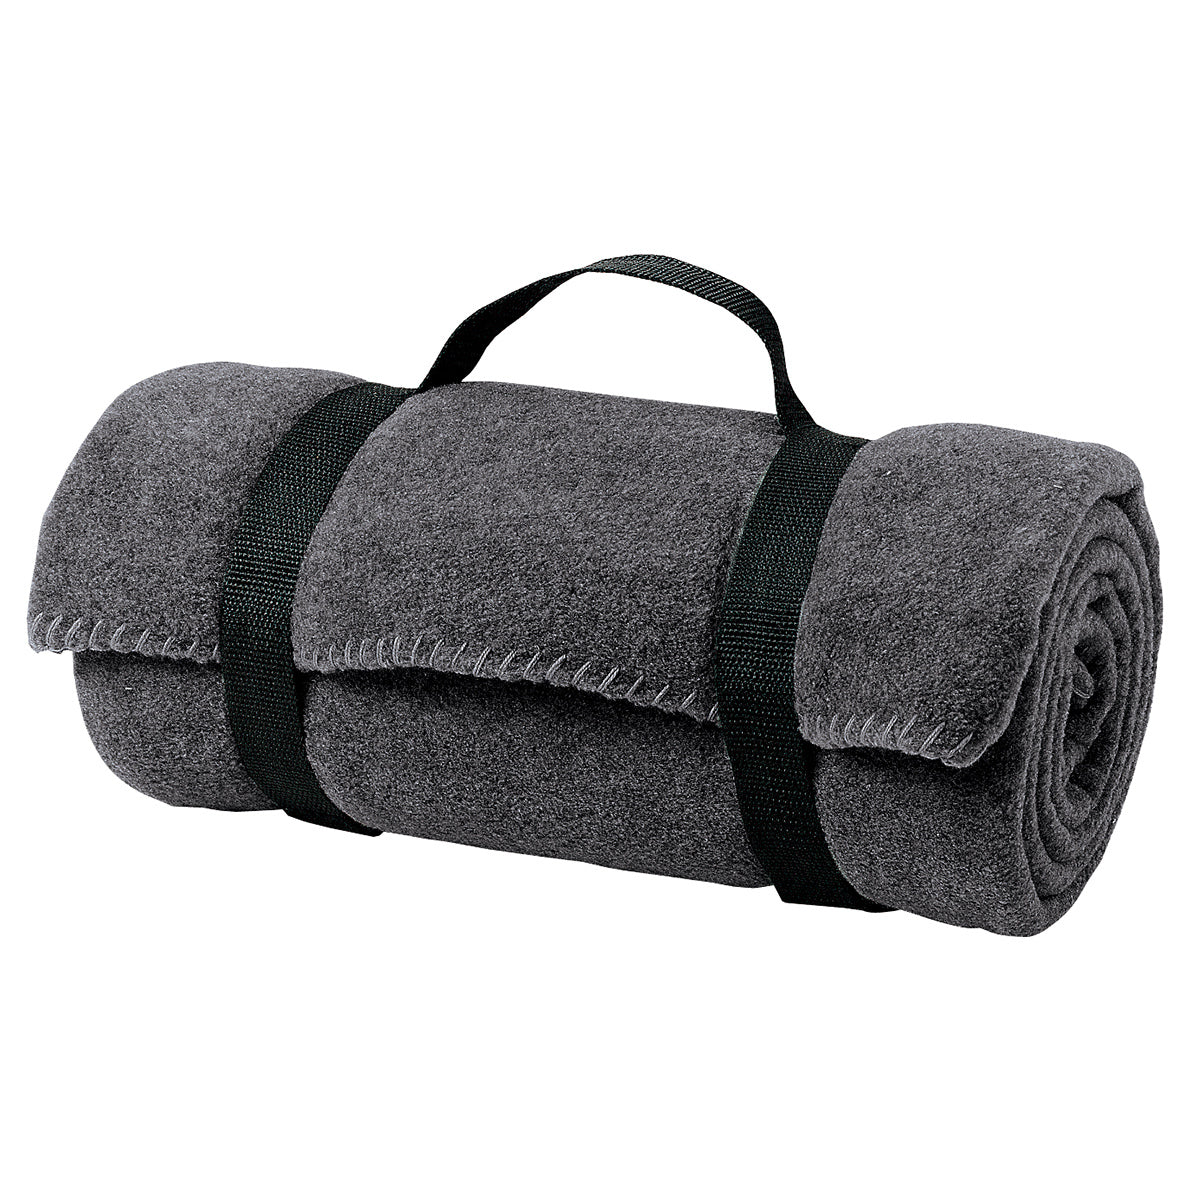 Value Fleece Blanket with Strap   Midnight Heather